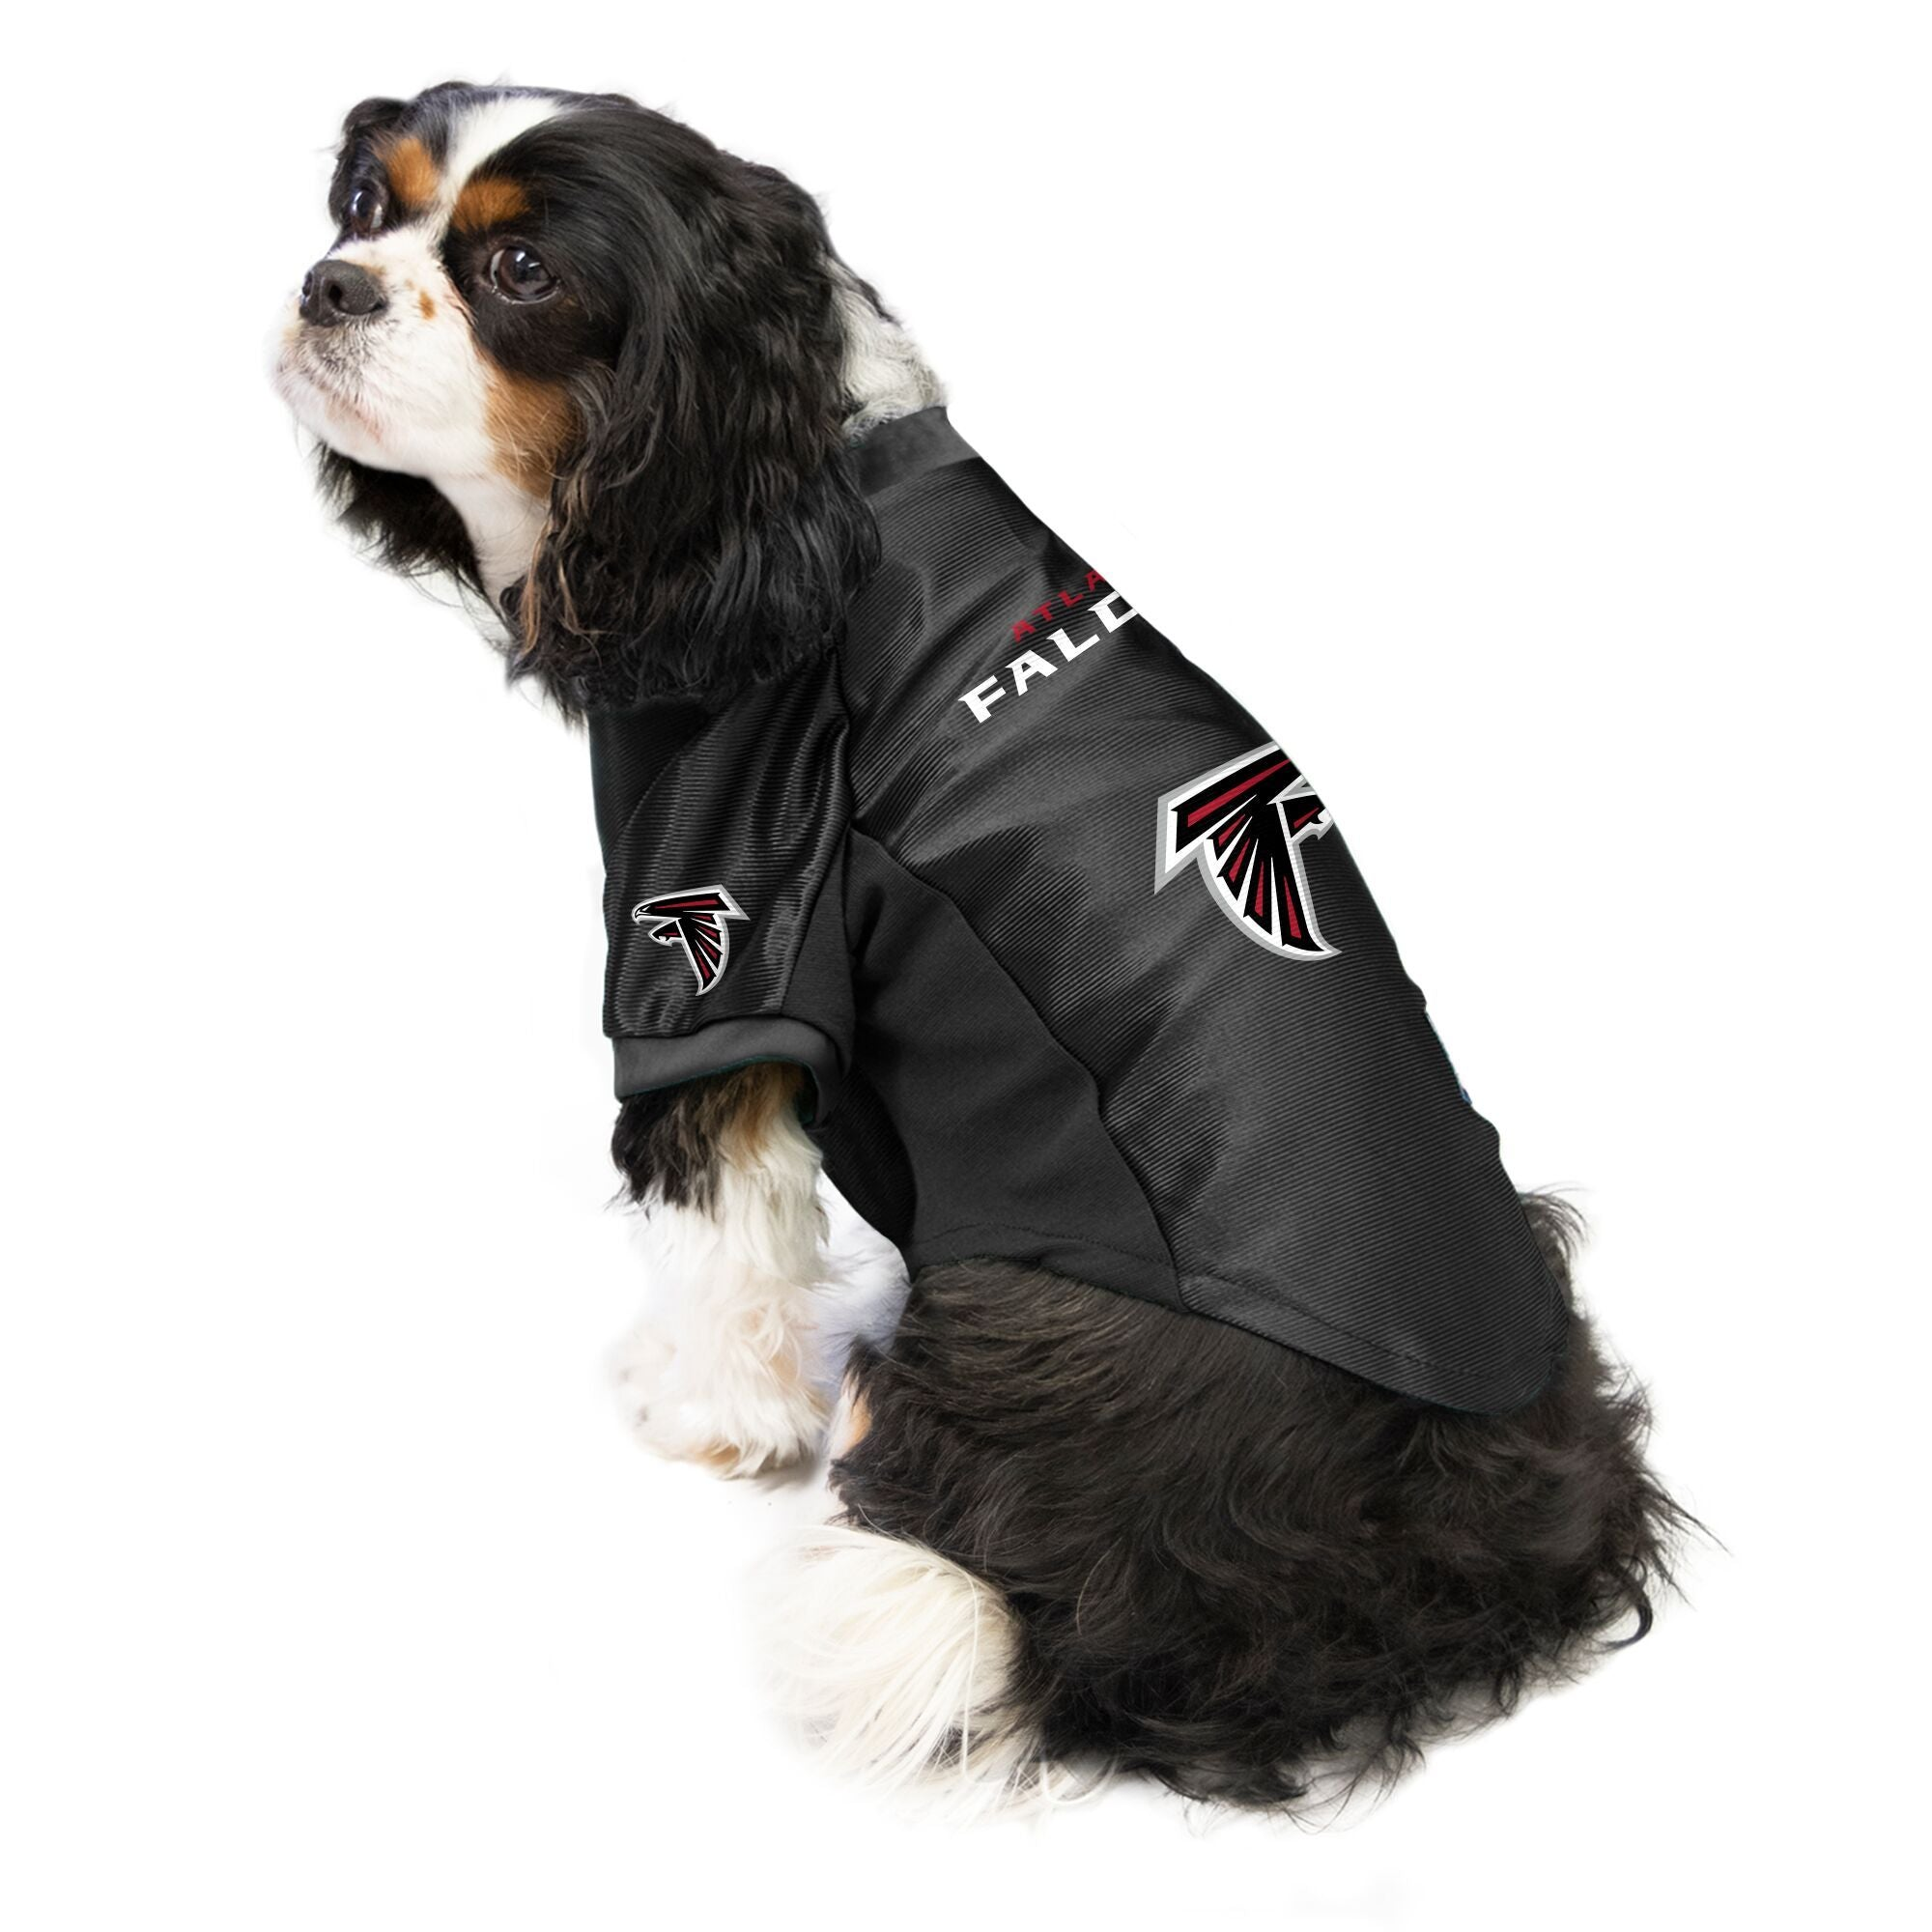 Falcons outfit for dogs